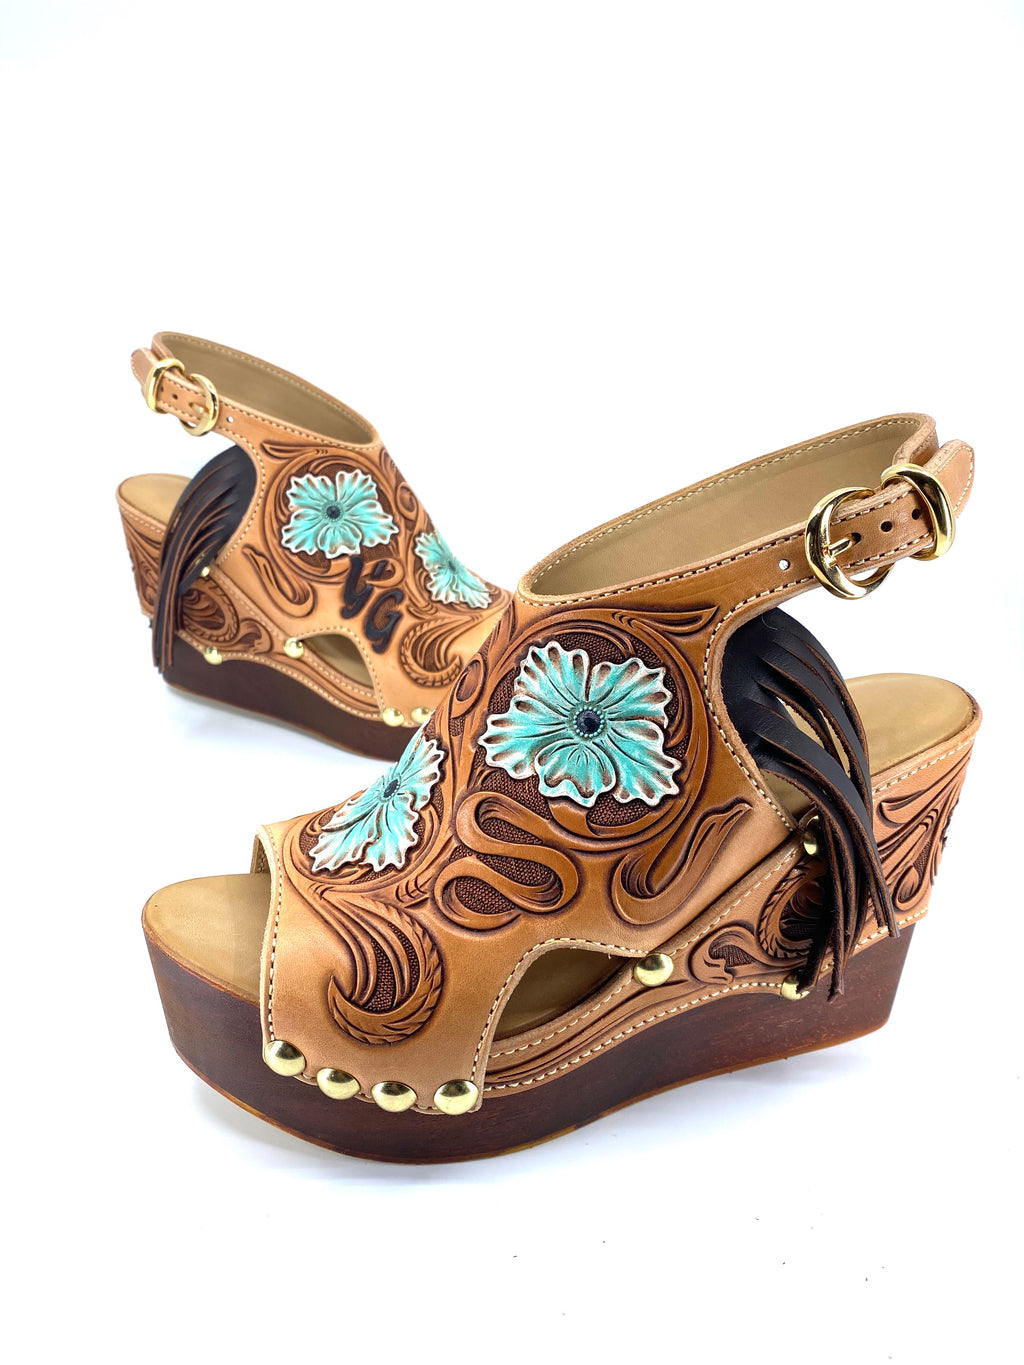 Fully Tooled & Fringed Wedge